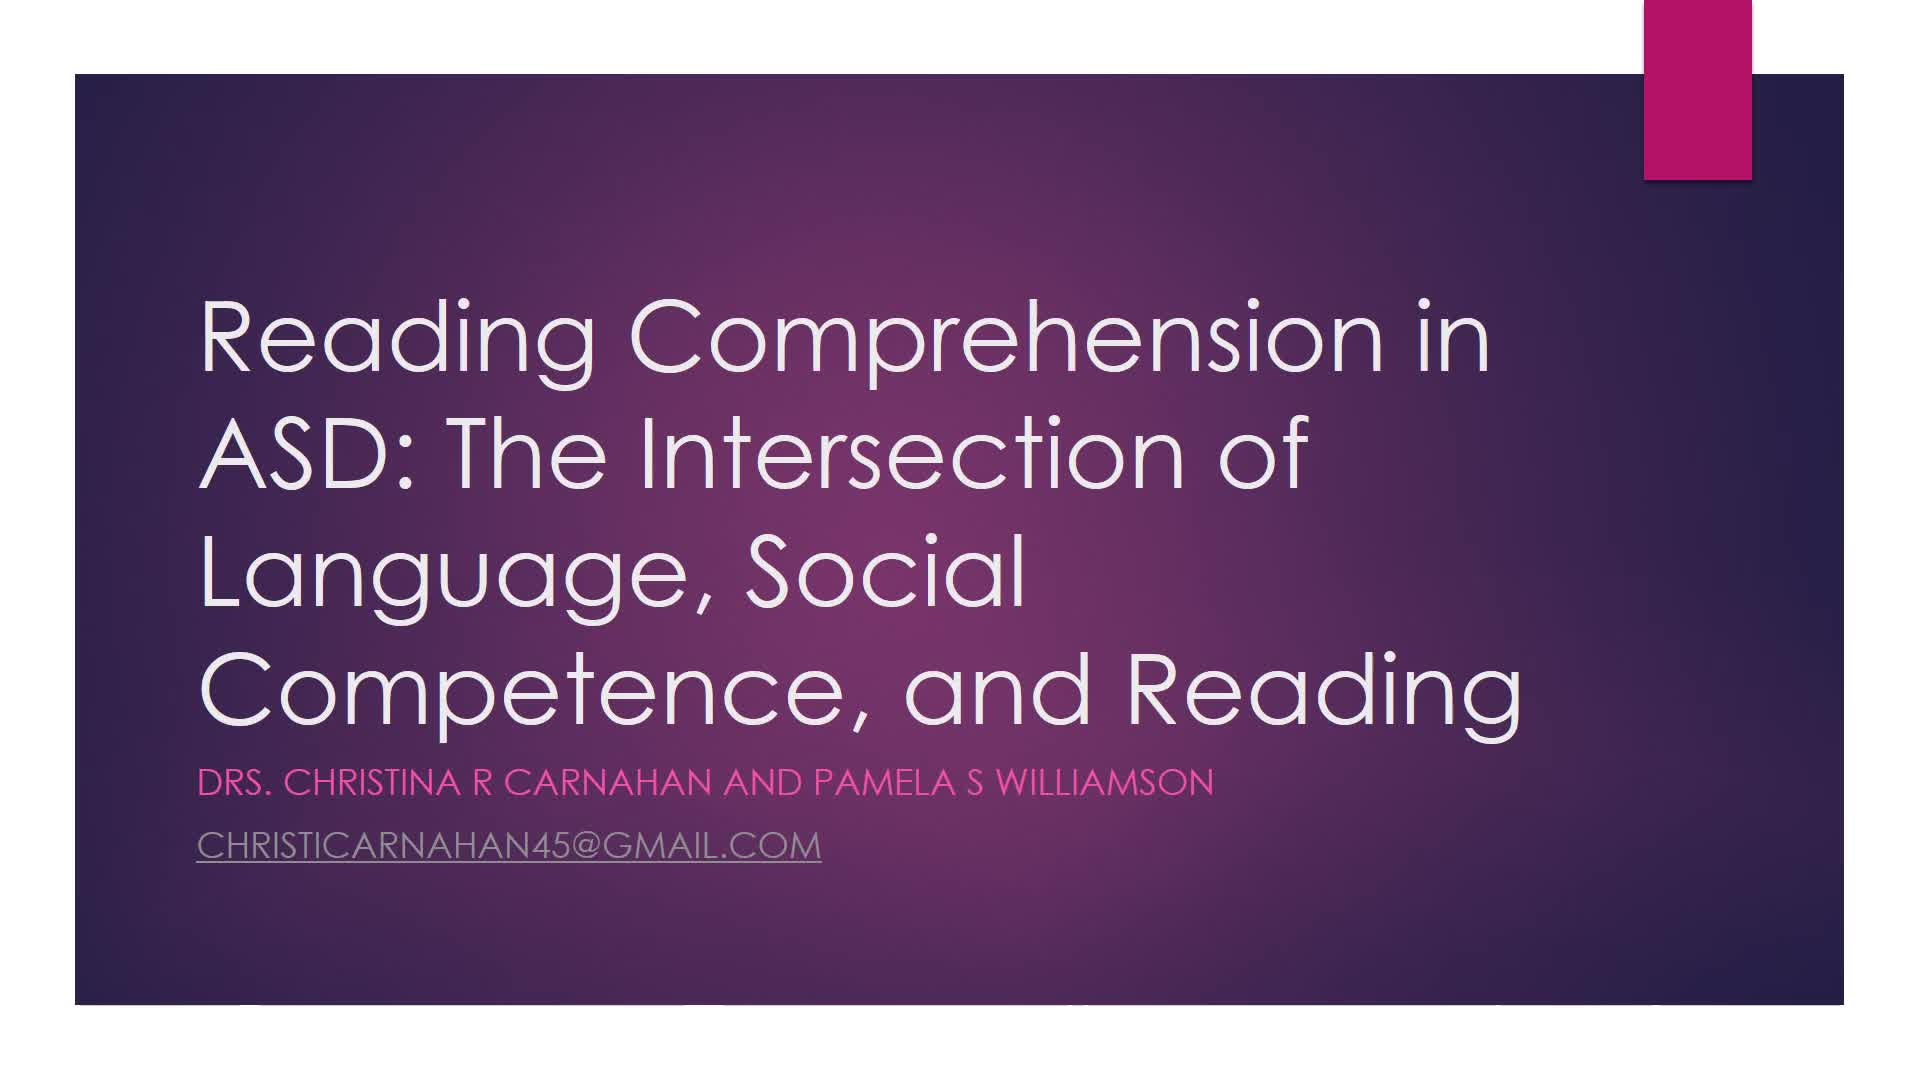 Reading Comprehension in ASD: The Intersection of Language, Social Competence, and Reading